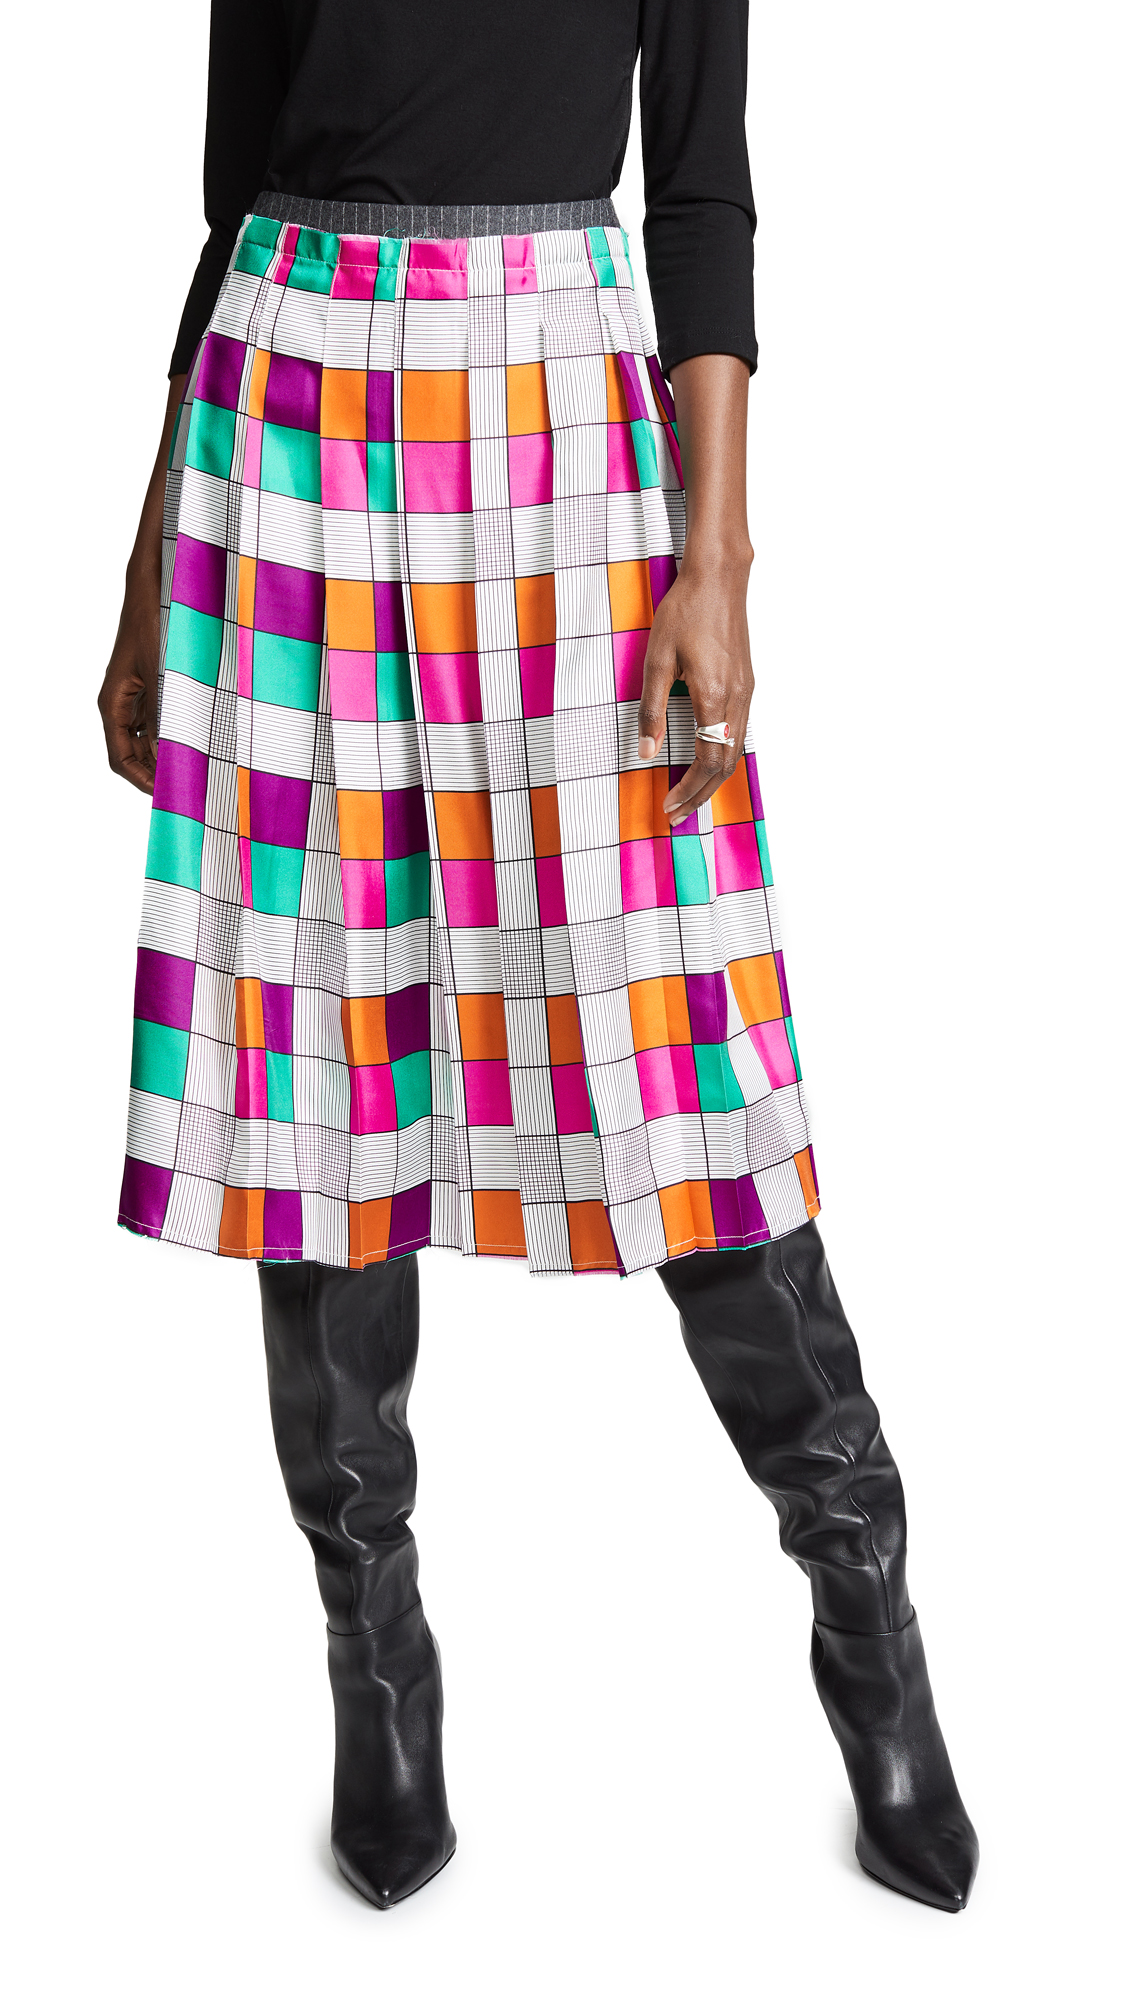 LA PRESTIC OUISTON Gina Grid Skirt in Grey/Pink/Teal